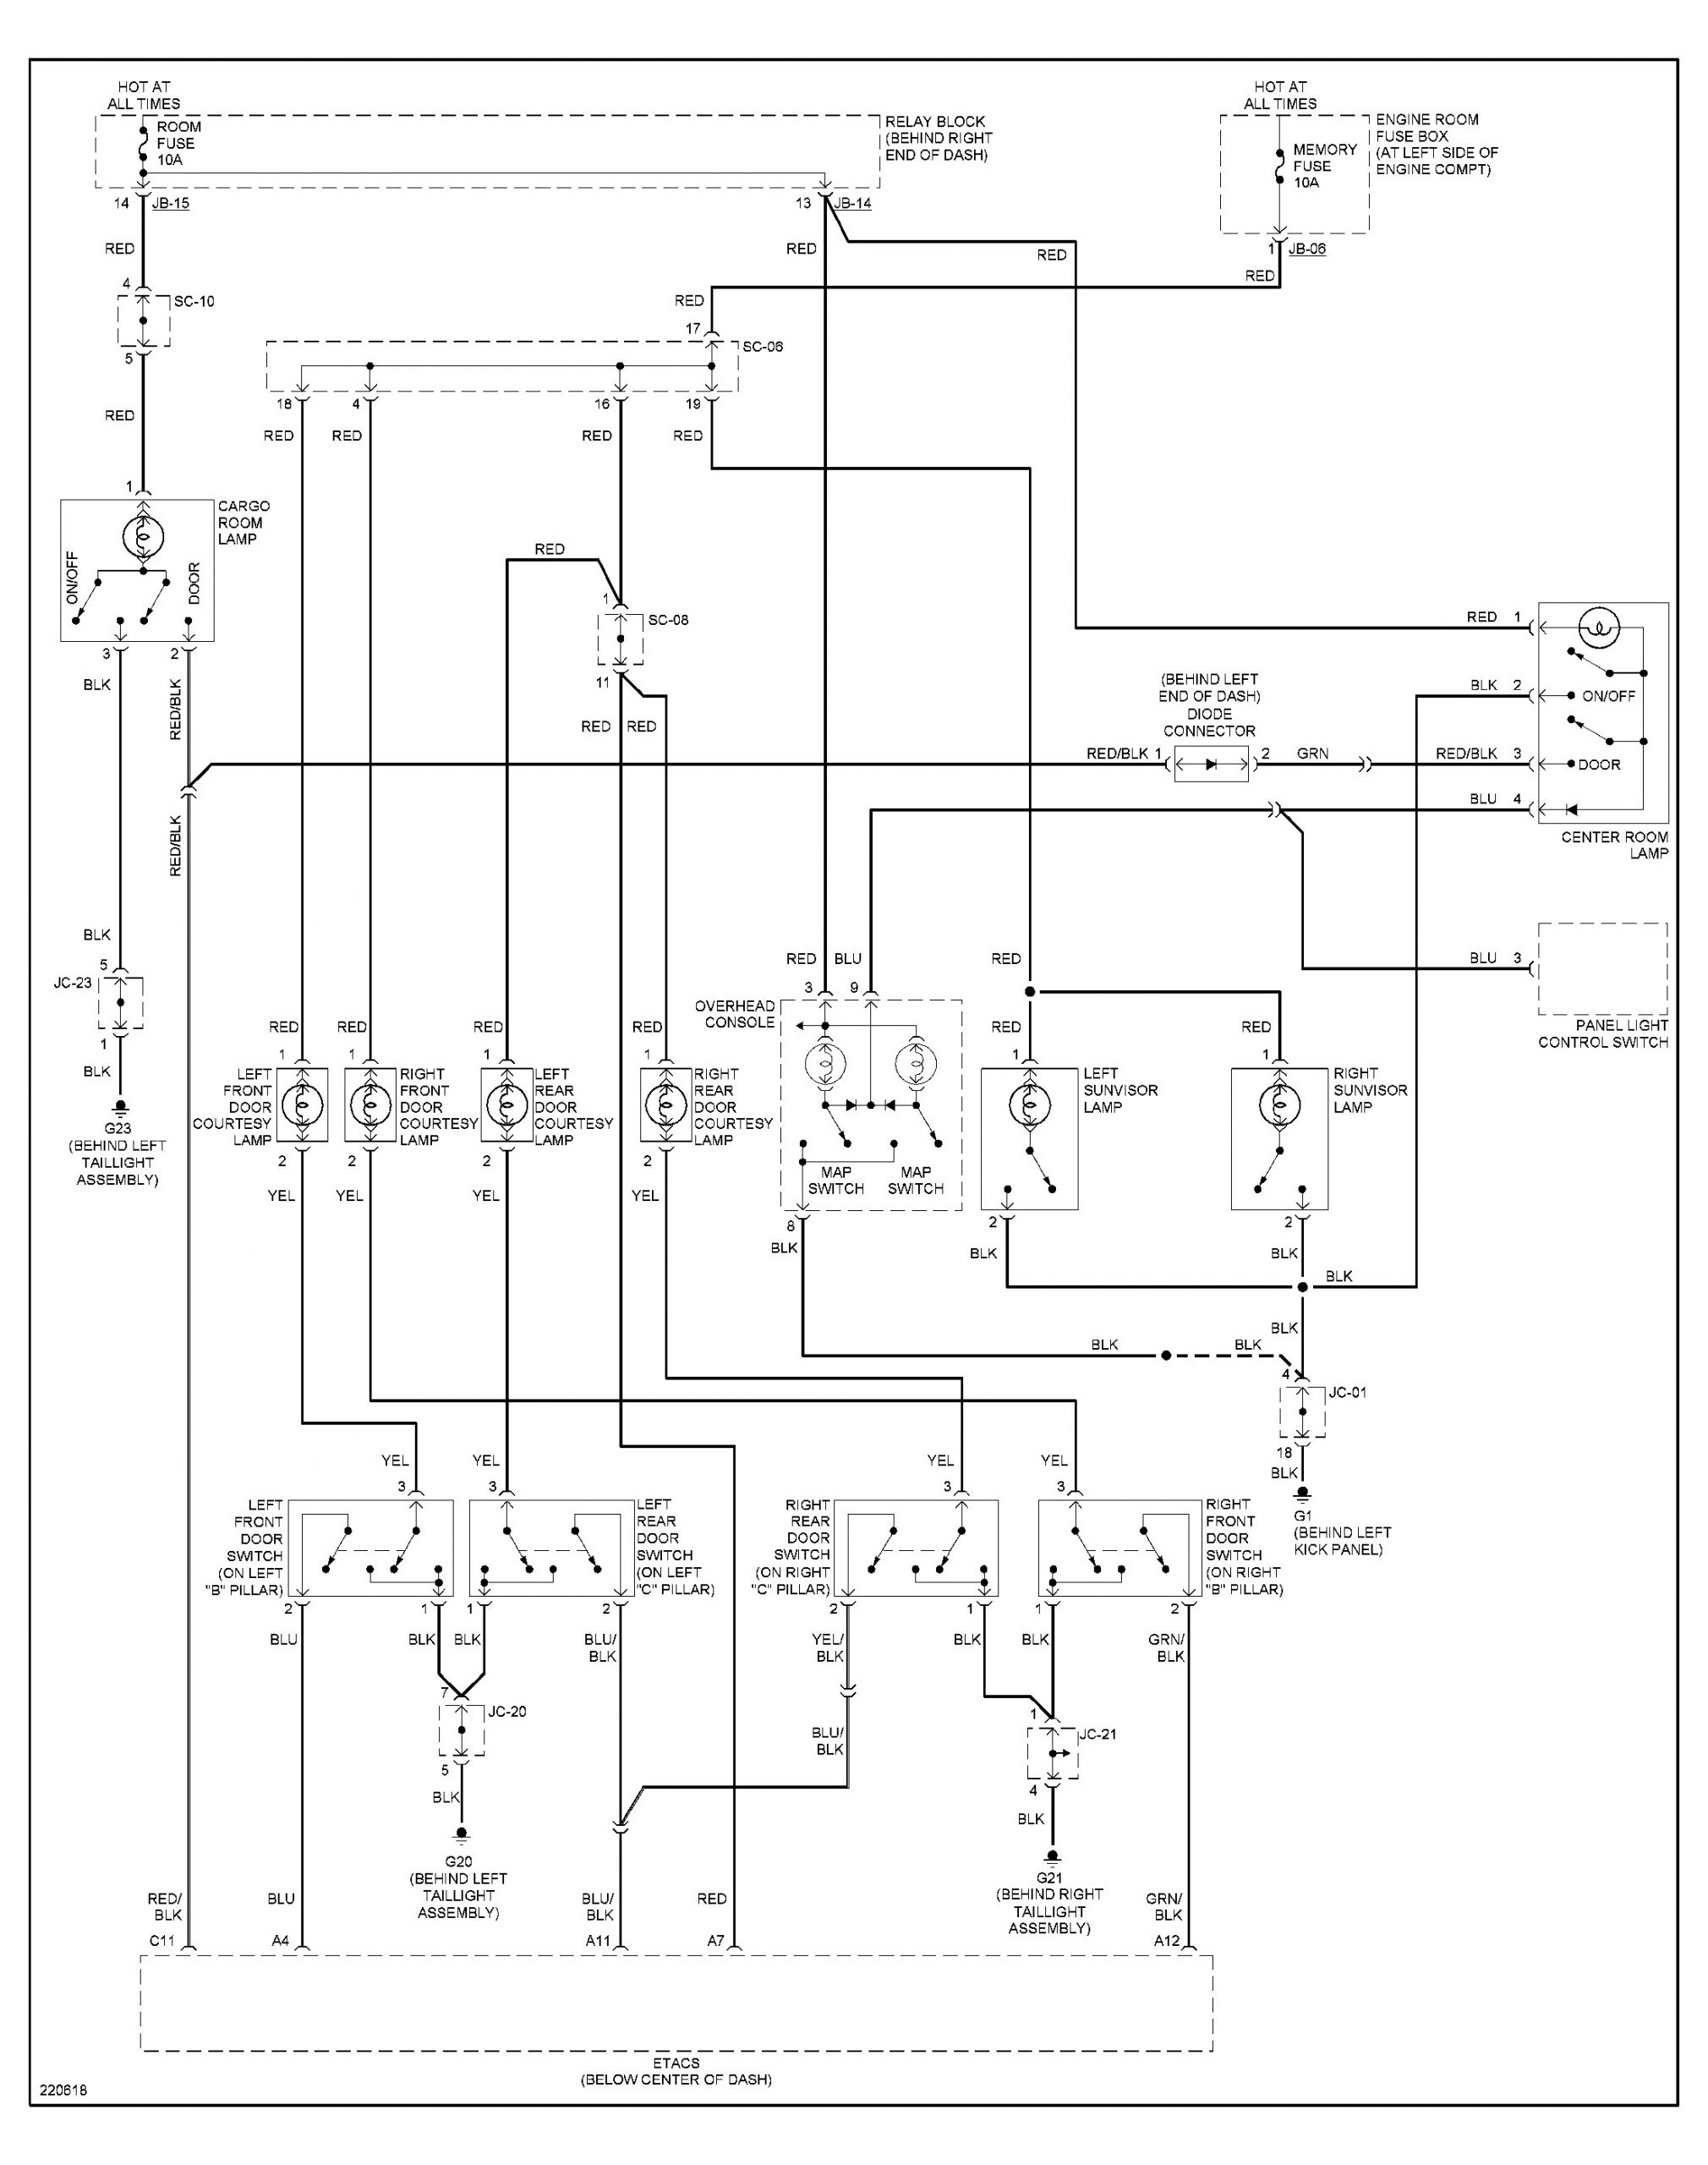 [DIAGRAM] Kia Amanti Wiring Diagram FULL Version HD